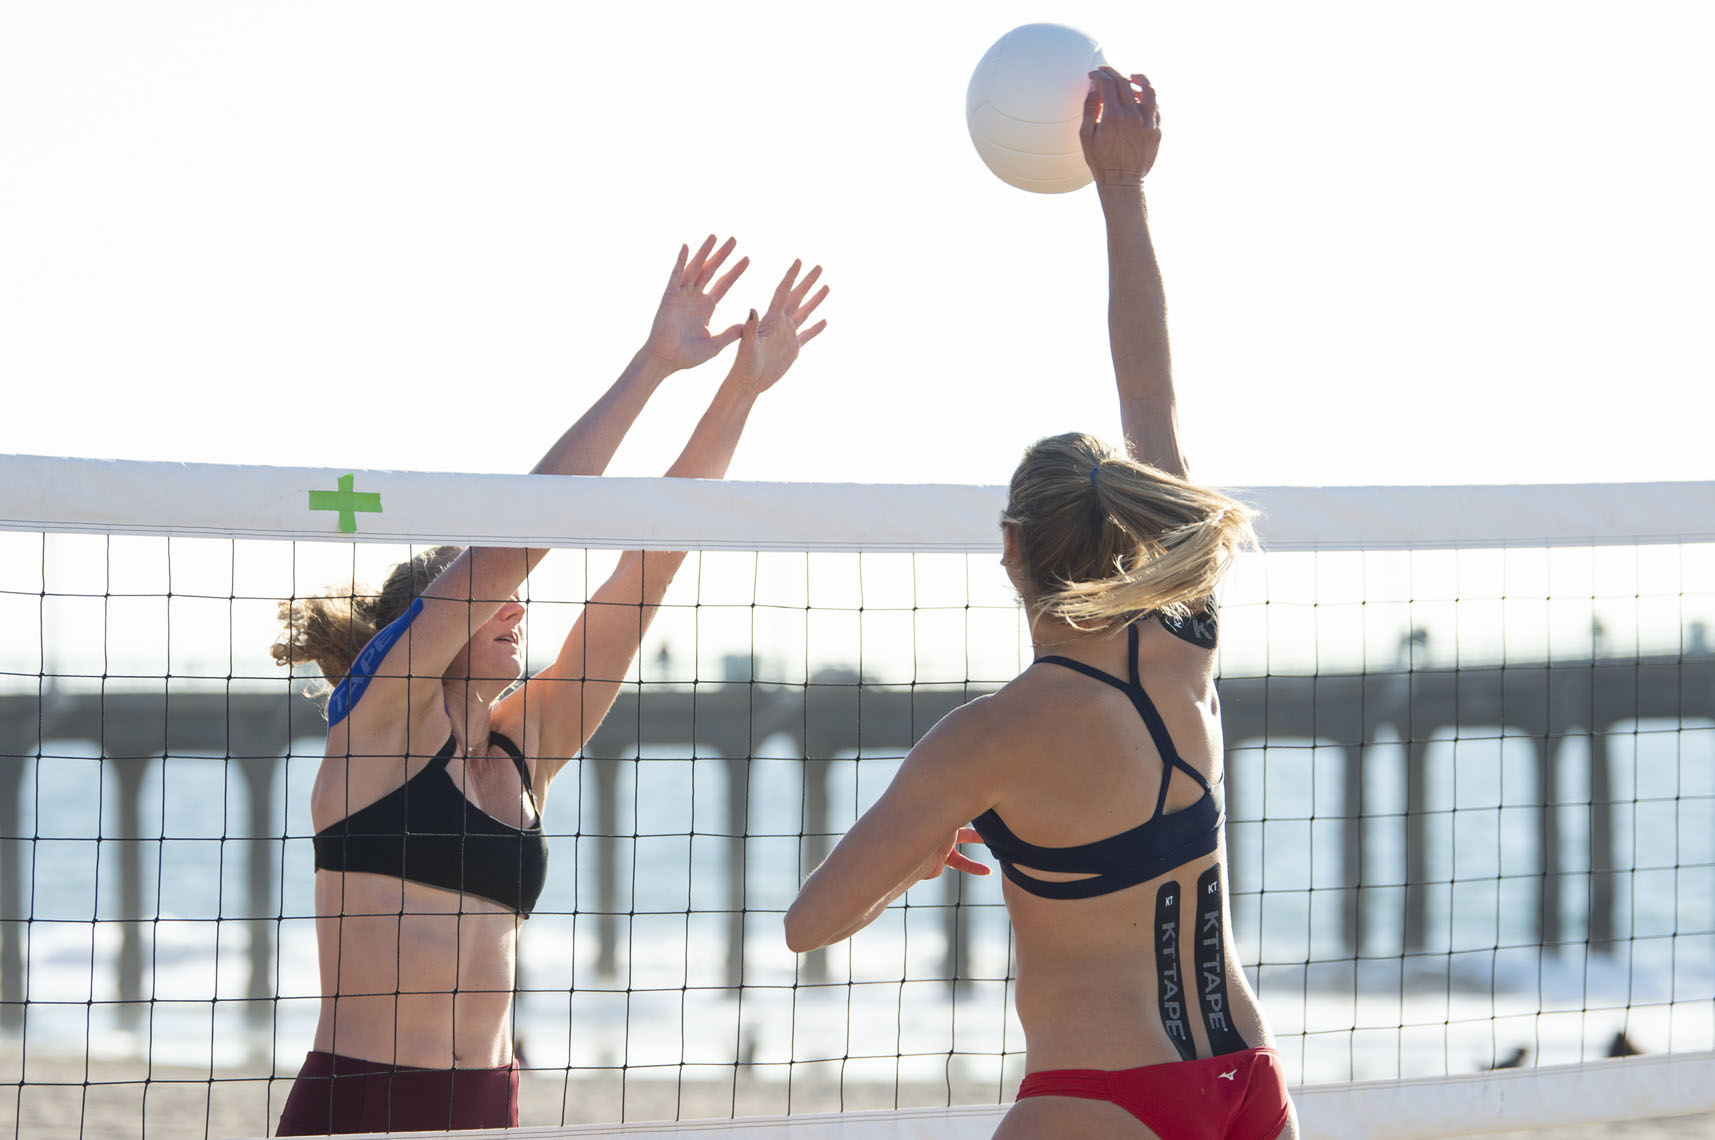 Beach Volleyball players April Ross and Alix Klineman for KT Tape